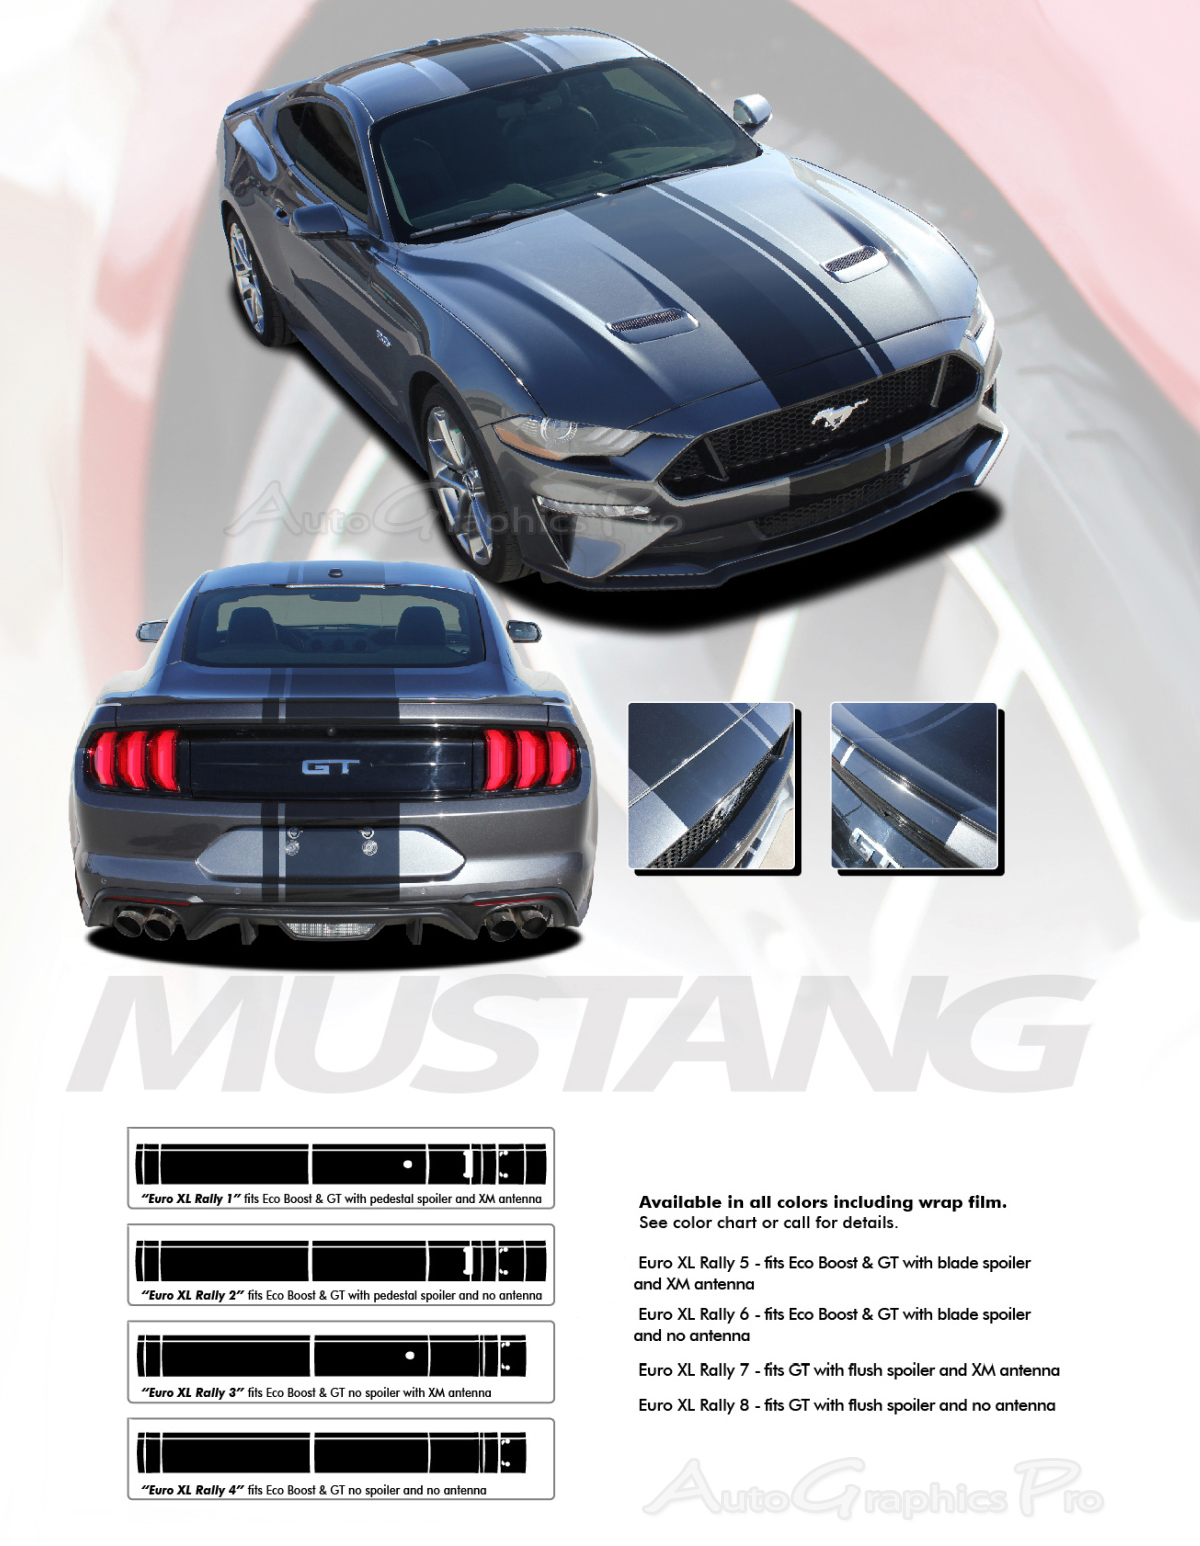 2018 2019 Ford Mustang Racing Stripes Euro Xl Rally Vinyl